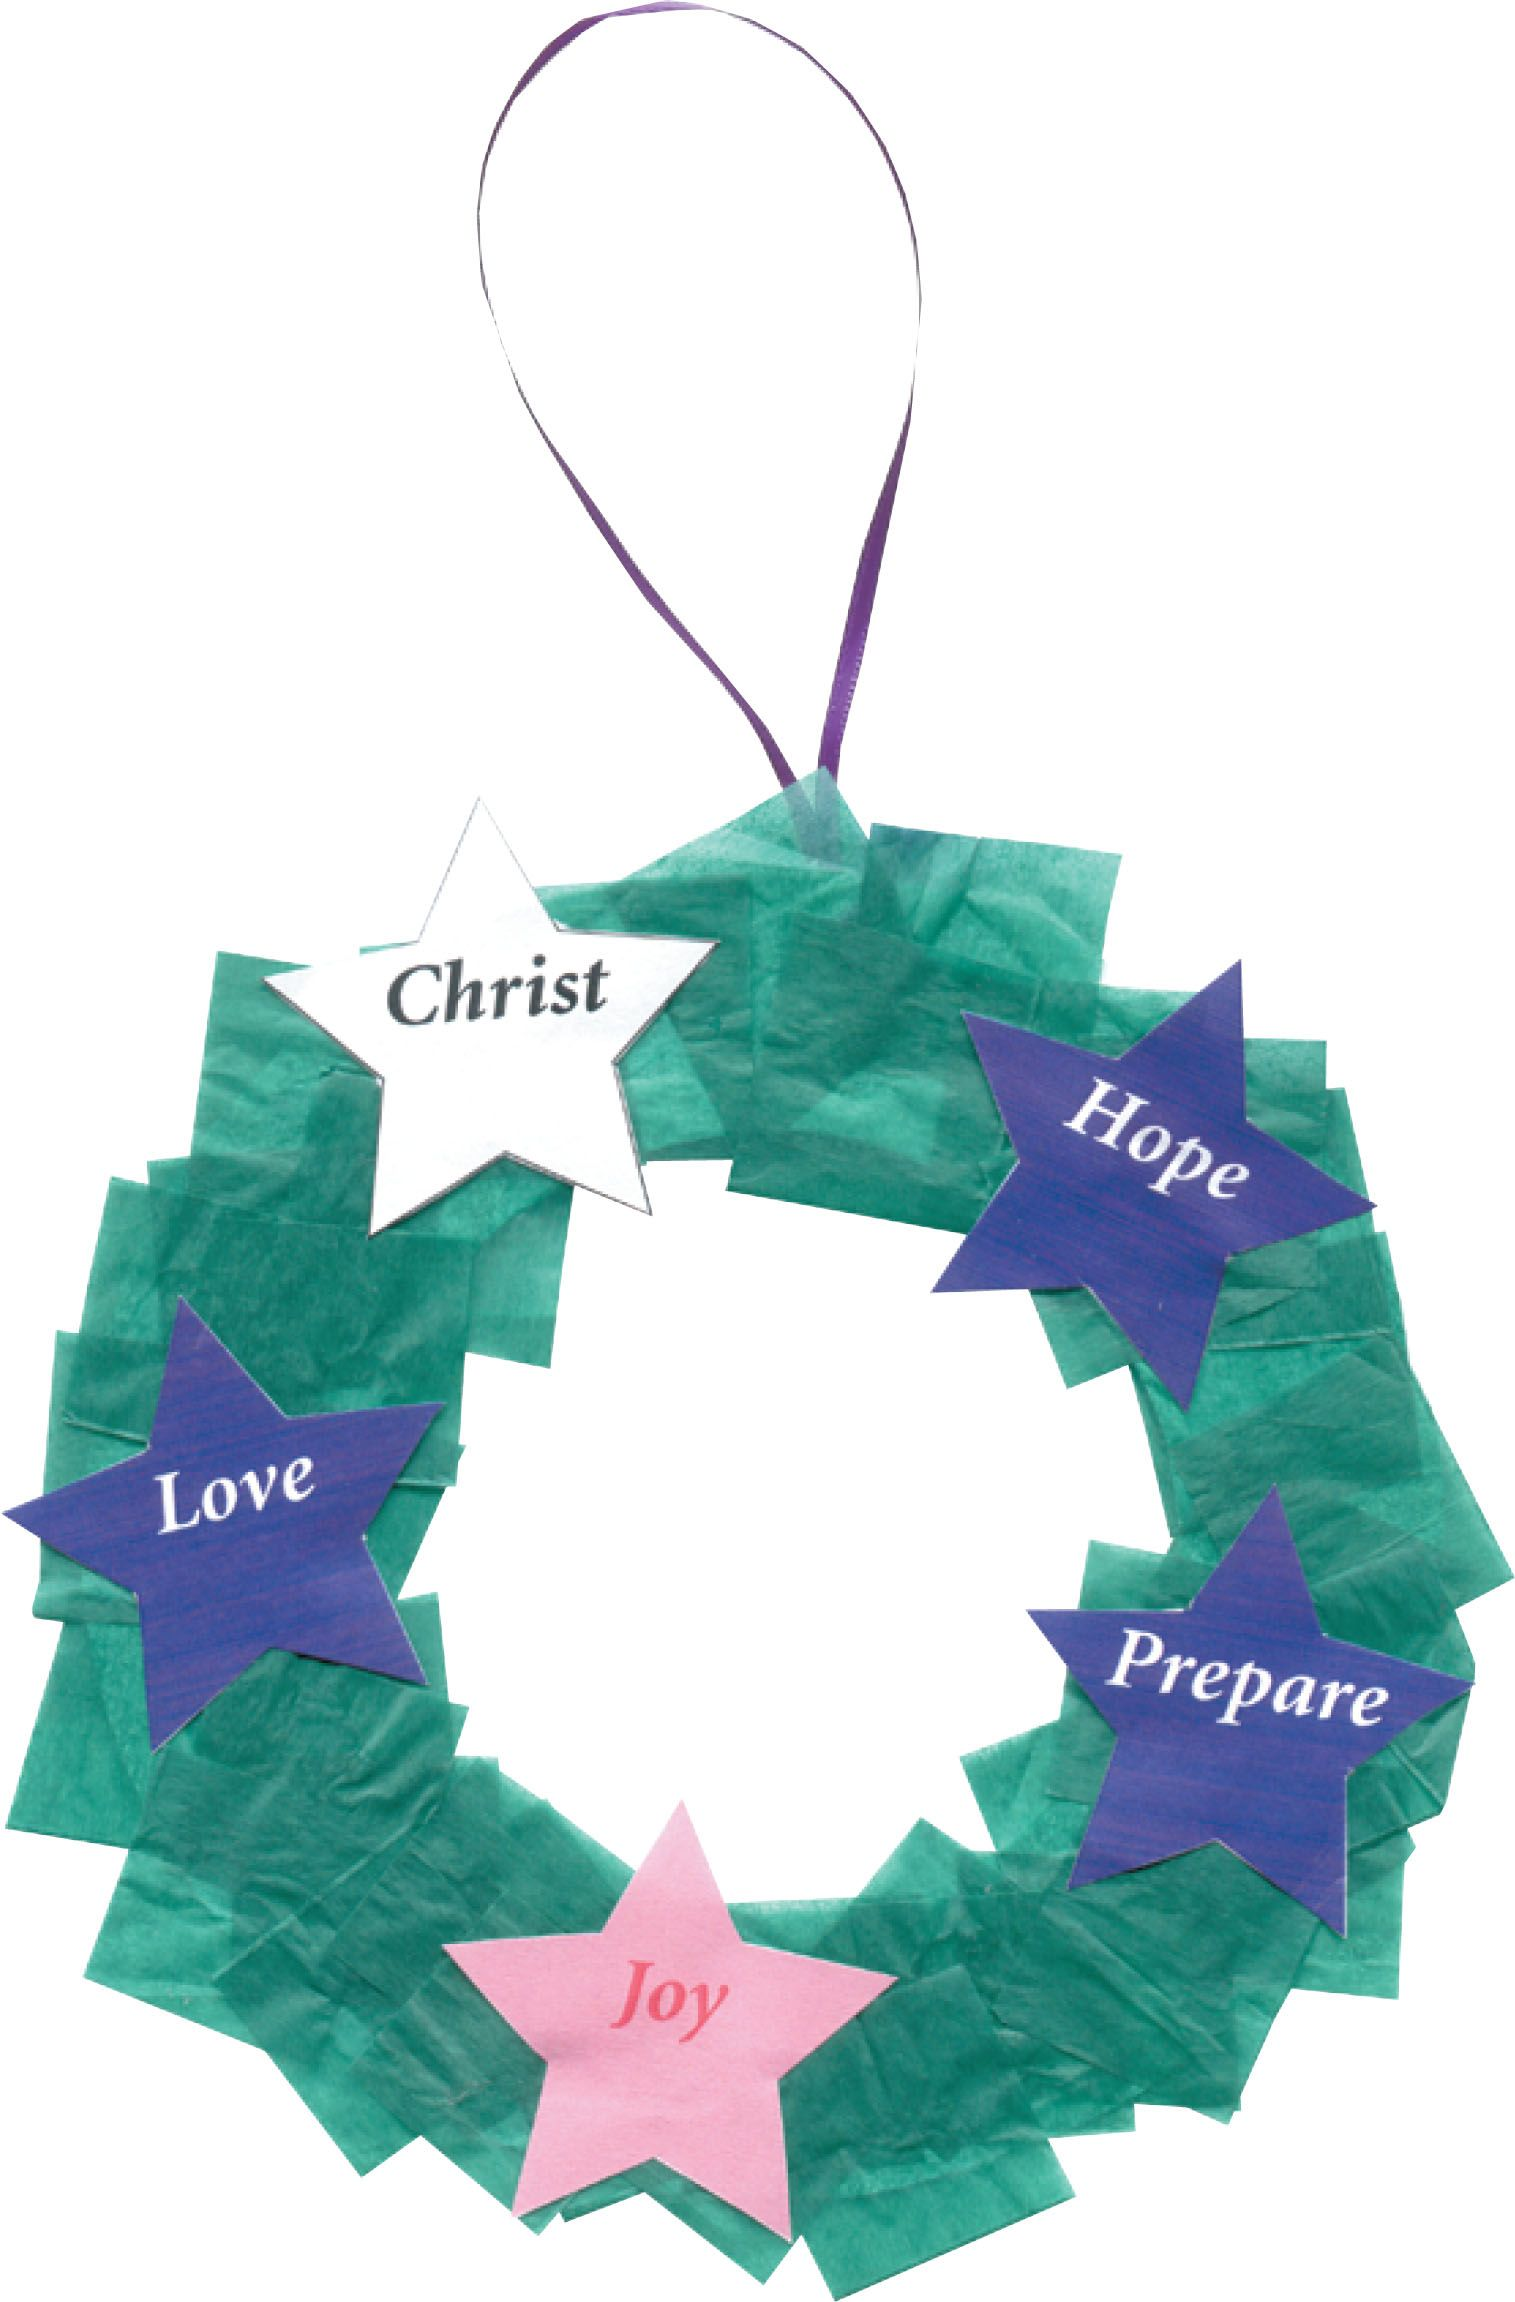 Advent Wreaths 216 955 From Guildcraft Arts Amp Crafts A Wreath To Illustrate The Meaning Of